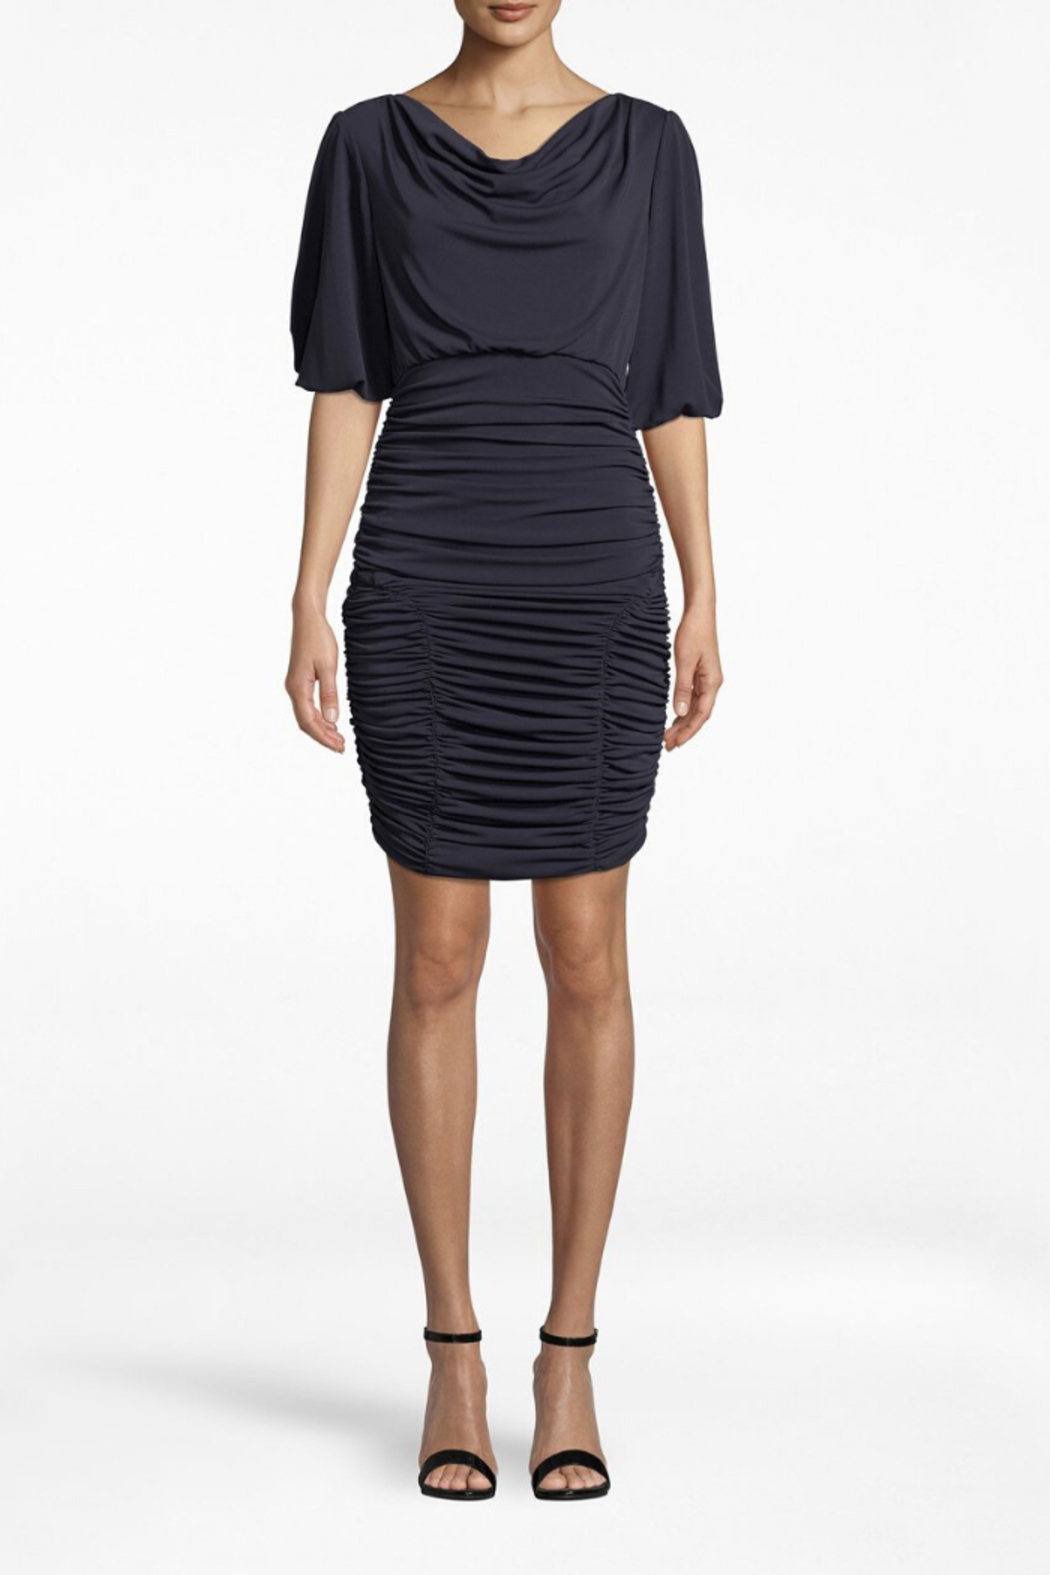 Nicole Miller Ruched Dress - Main Image